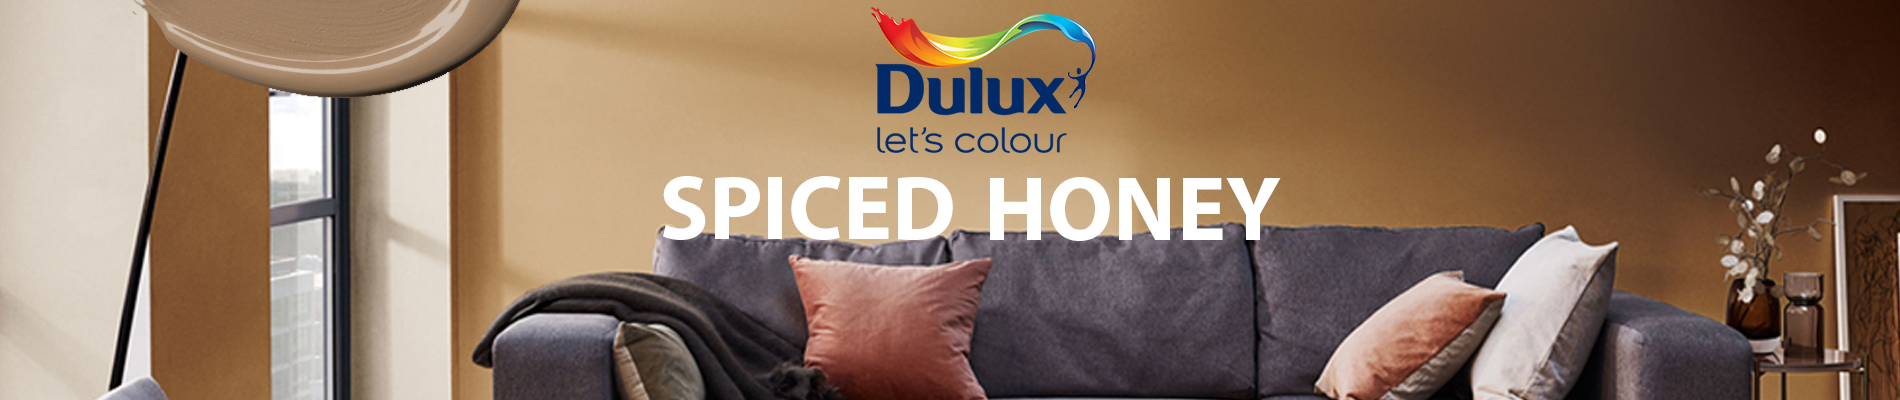 Is it worth paying more for Dulux paint?